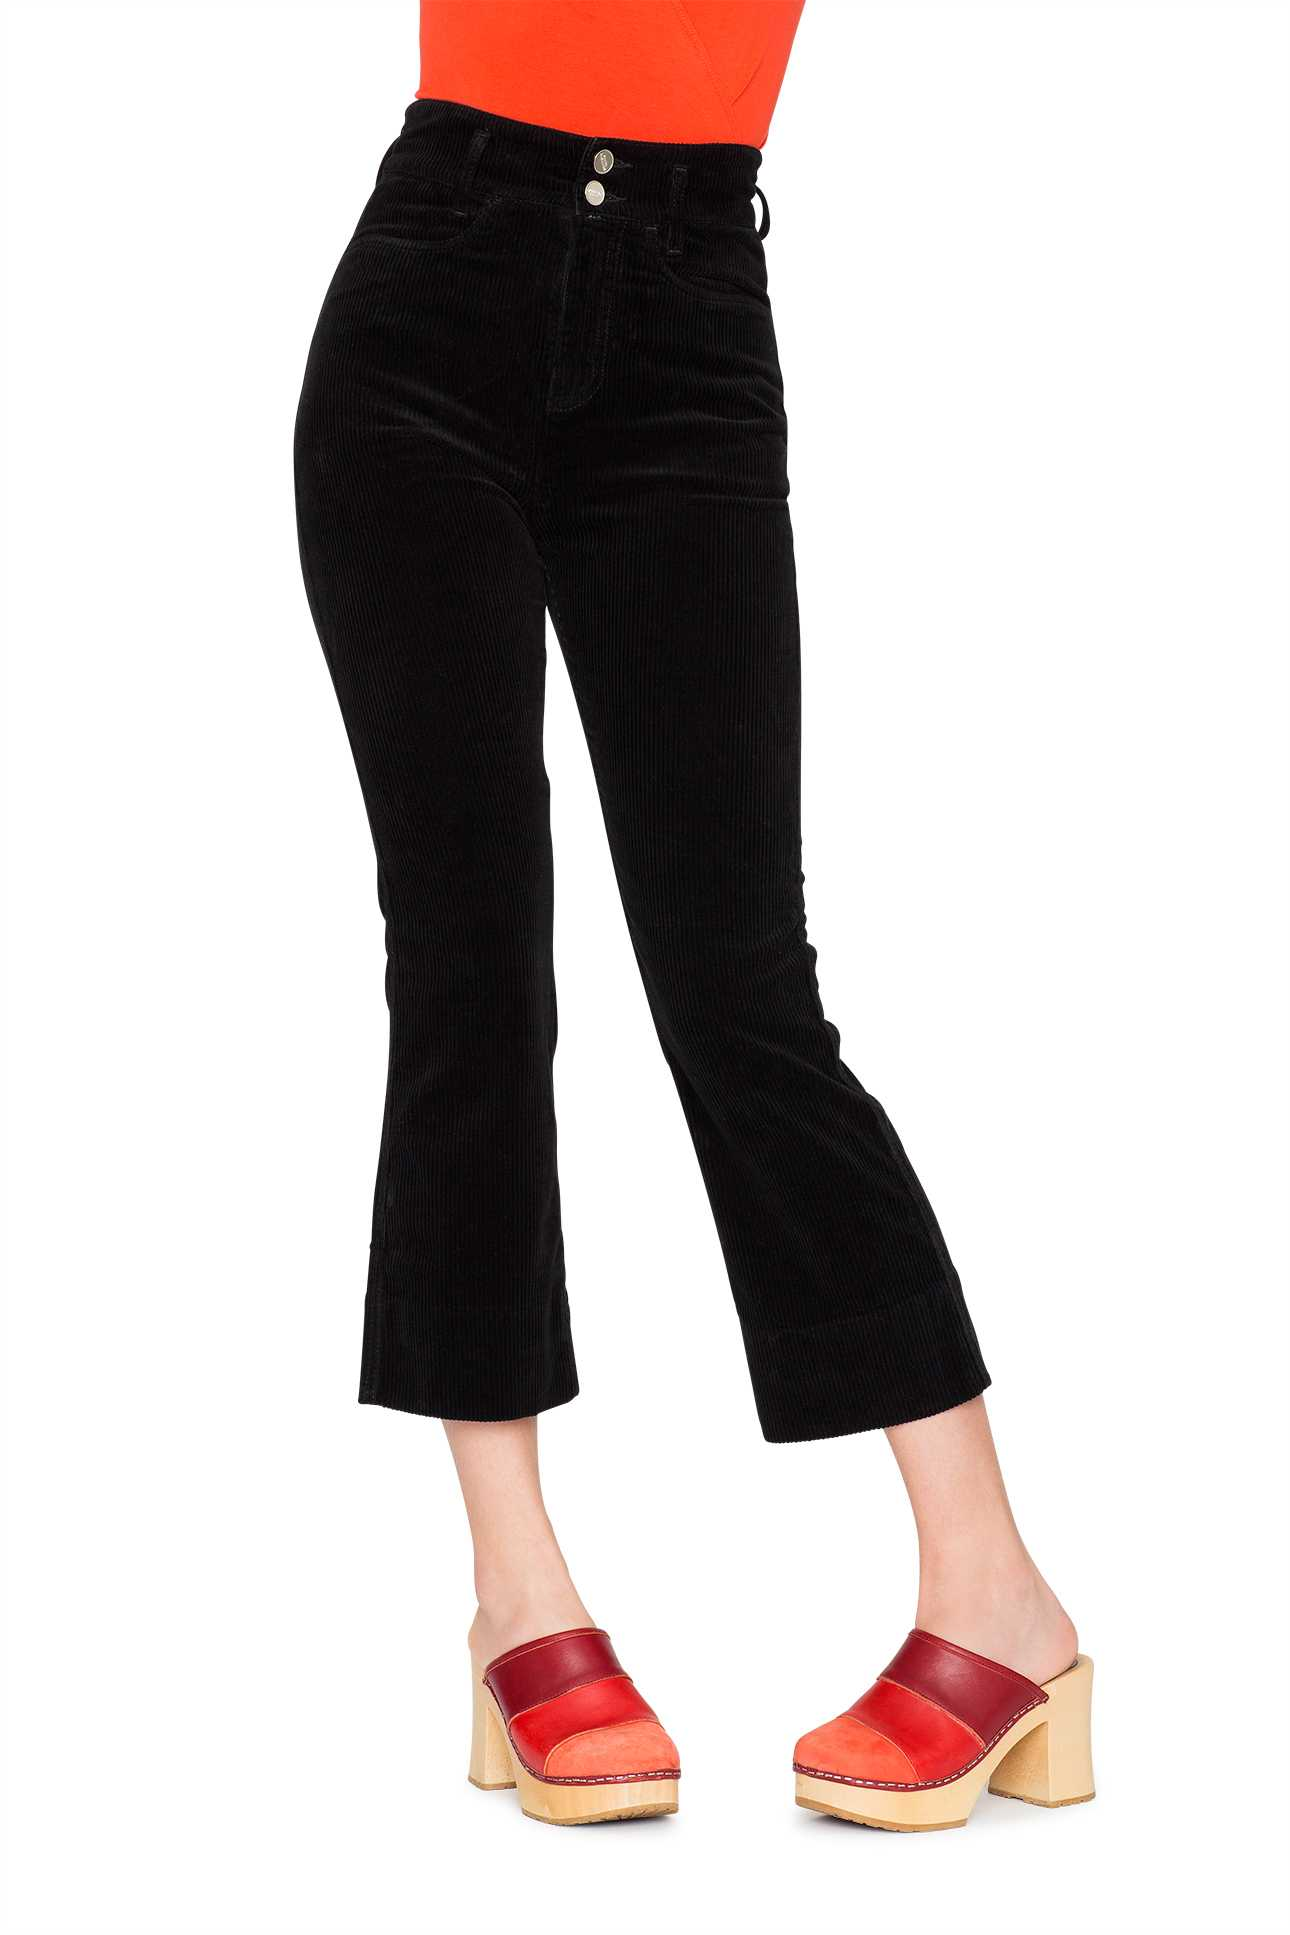 Short Boot Cut Pants Cord Black